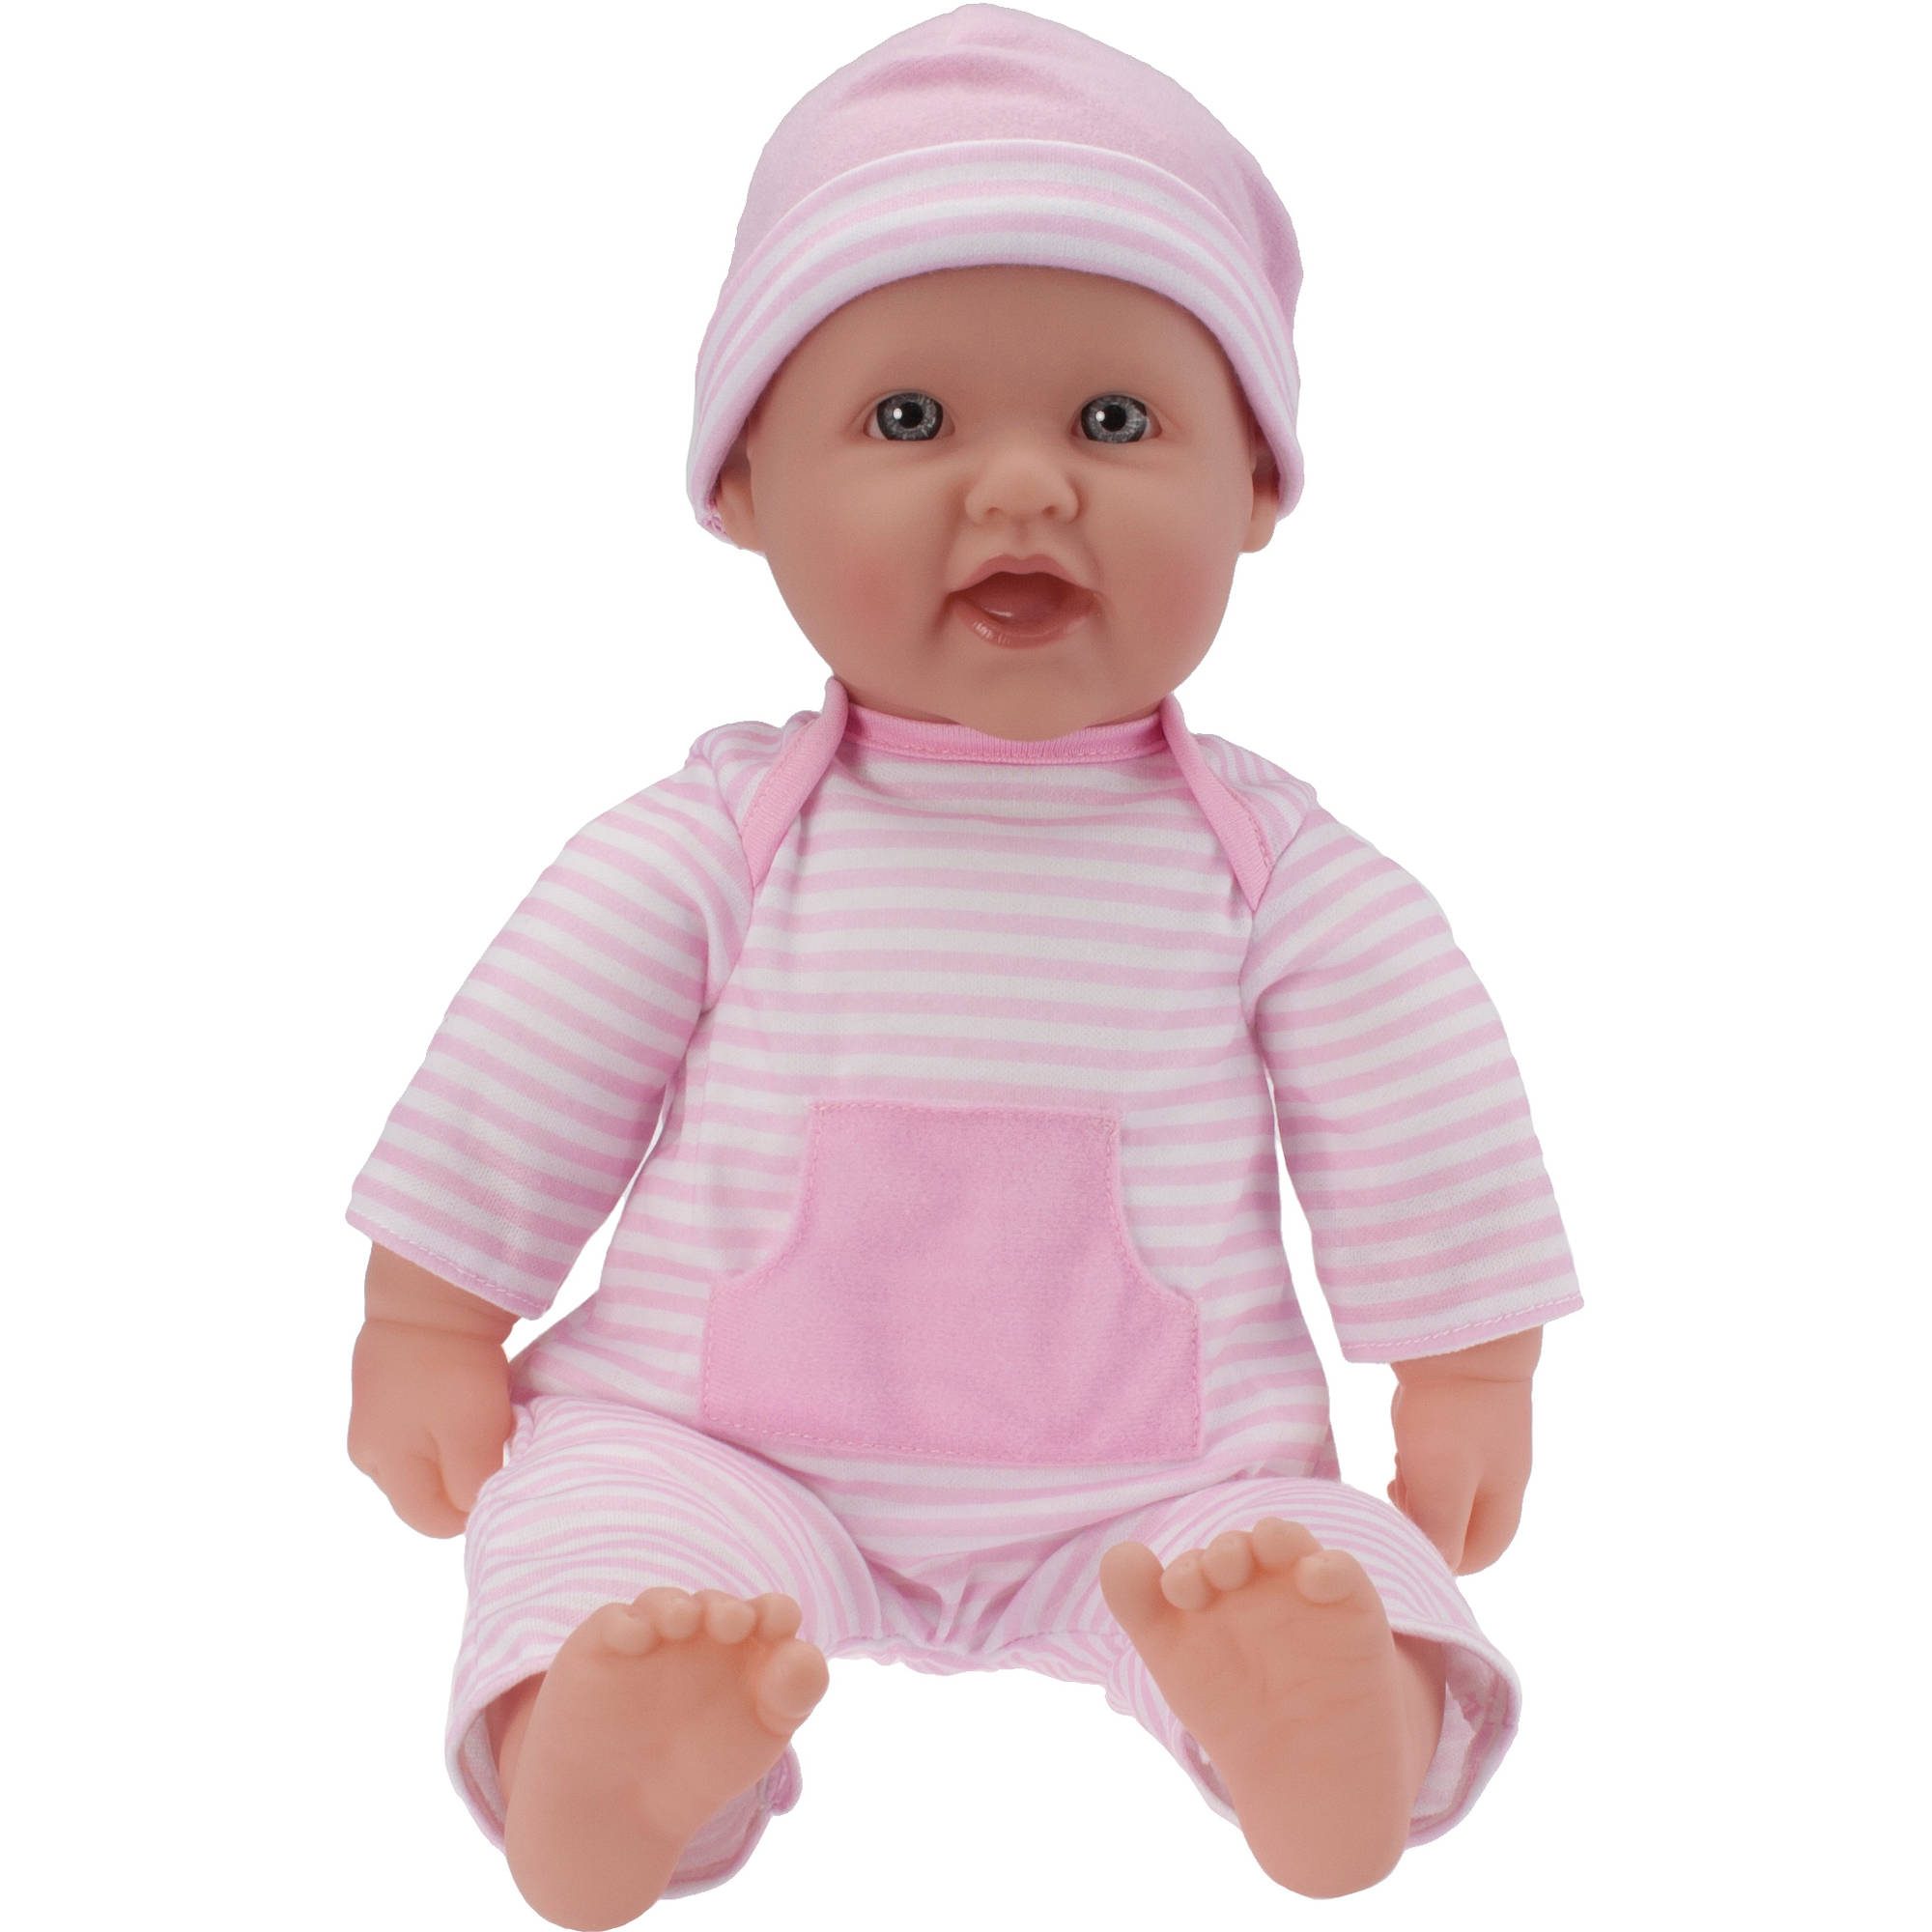 Baby Boy Toys Walmart : Lovee dolls quot teapot doll with accessories walmart